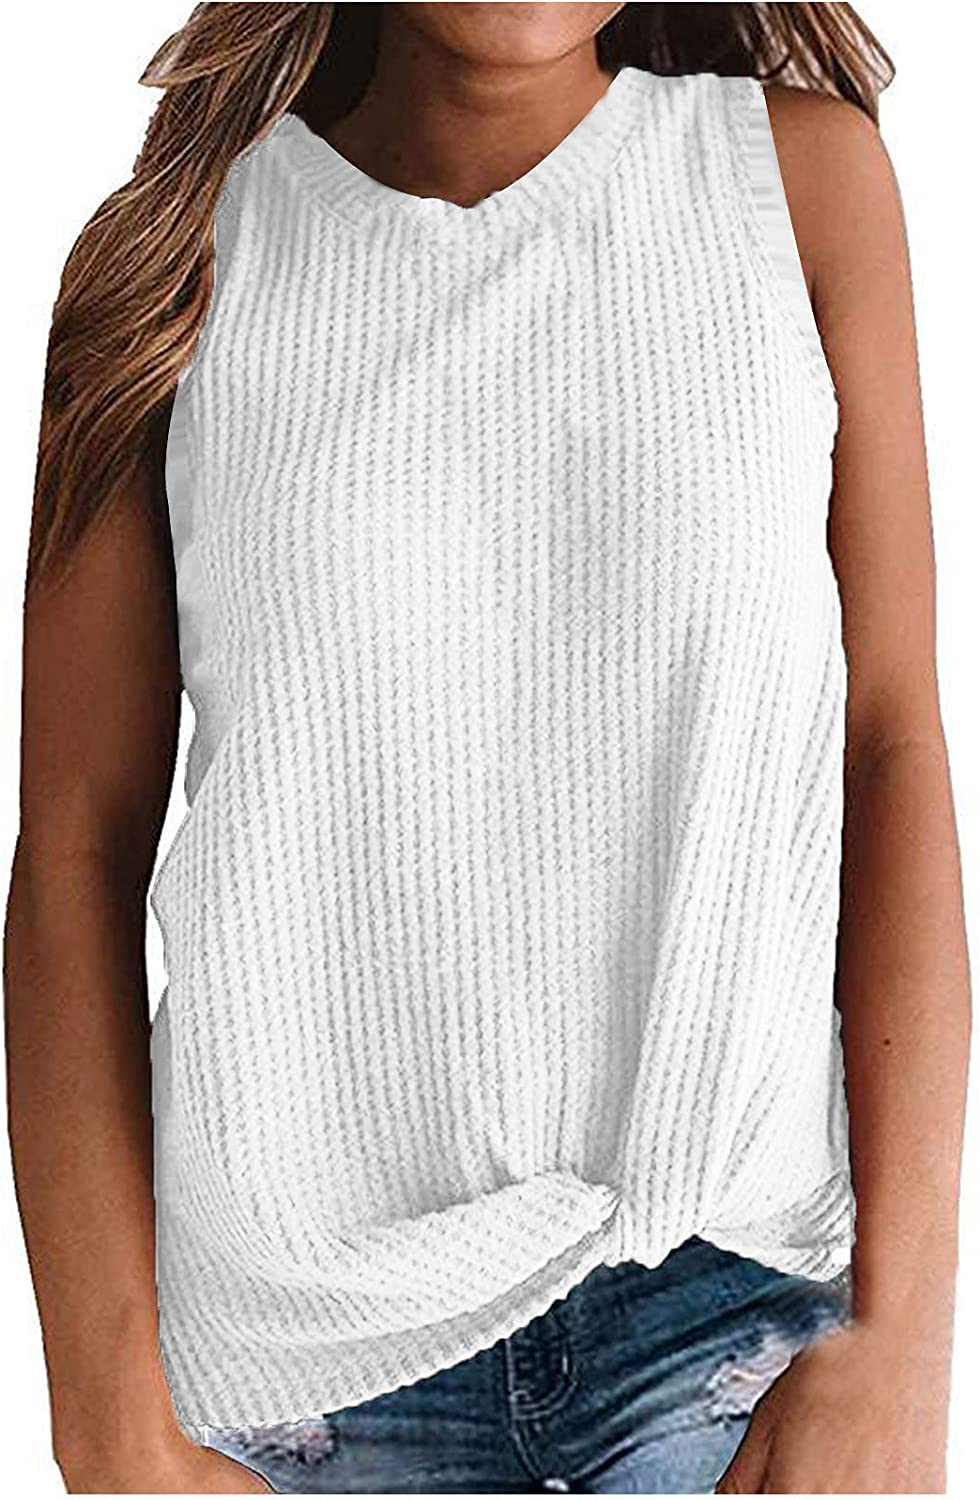 Juniors Knotted Casual Crewneck Sleeveless T-Shirt Vest Multicolor Solid Color Top